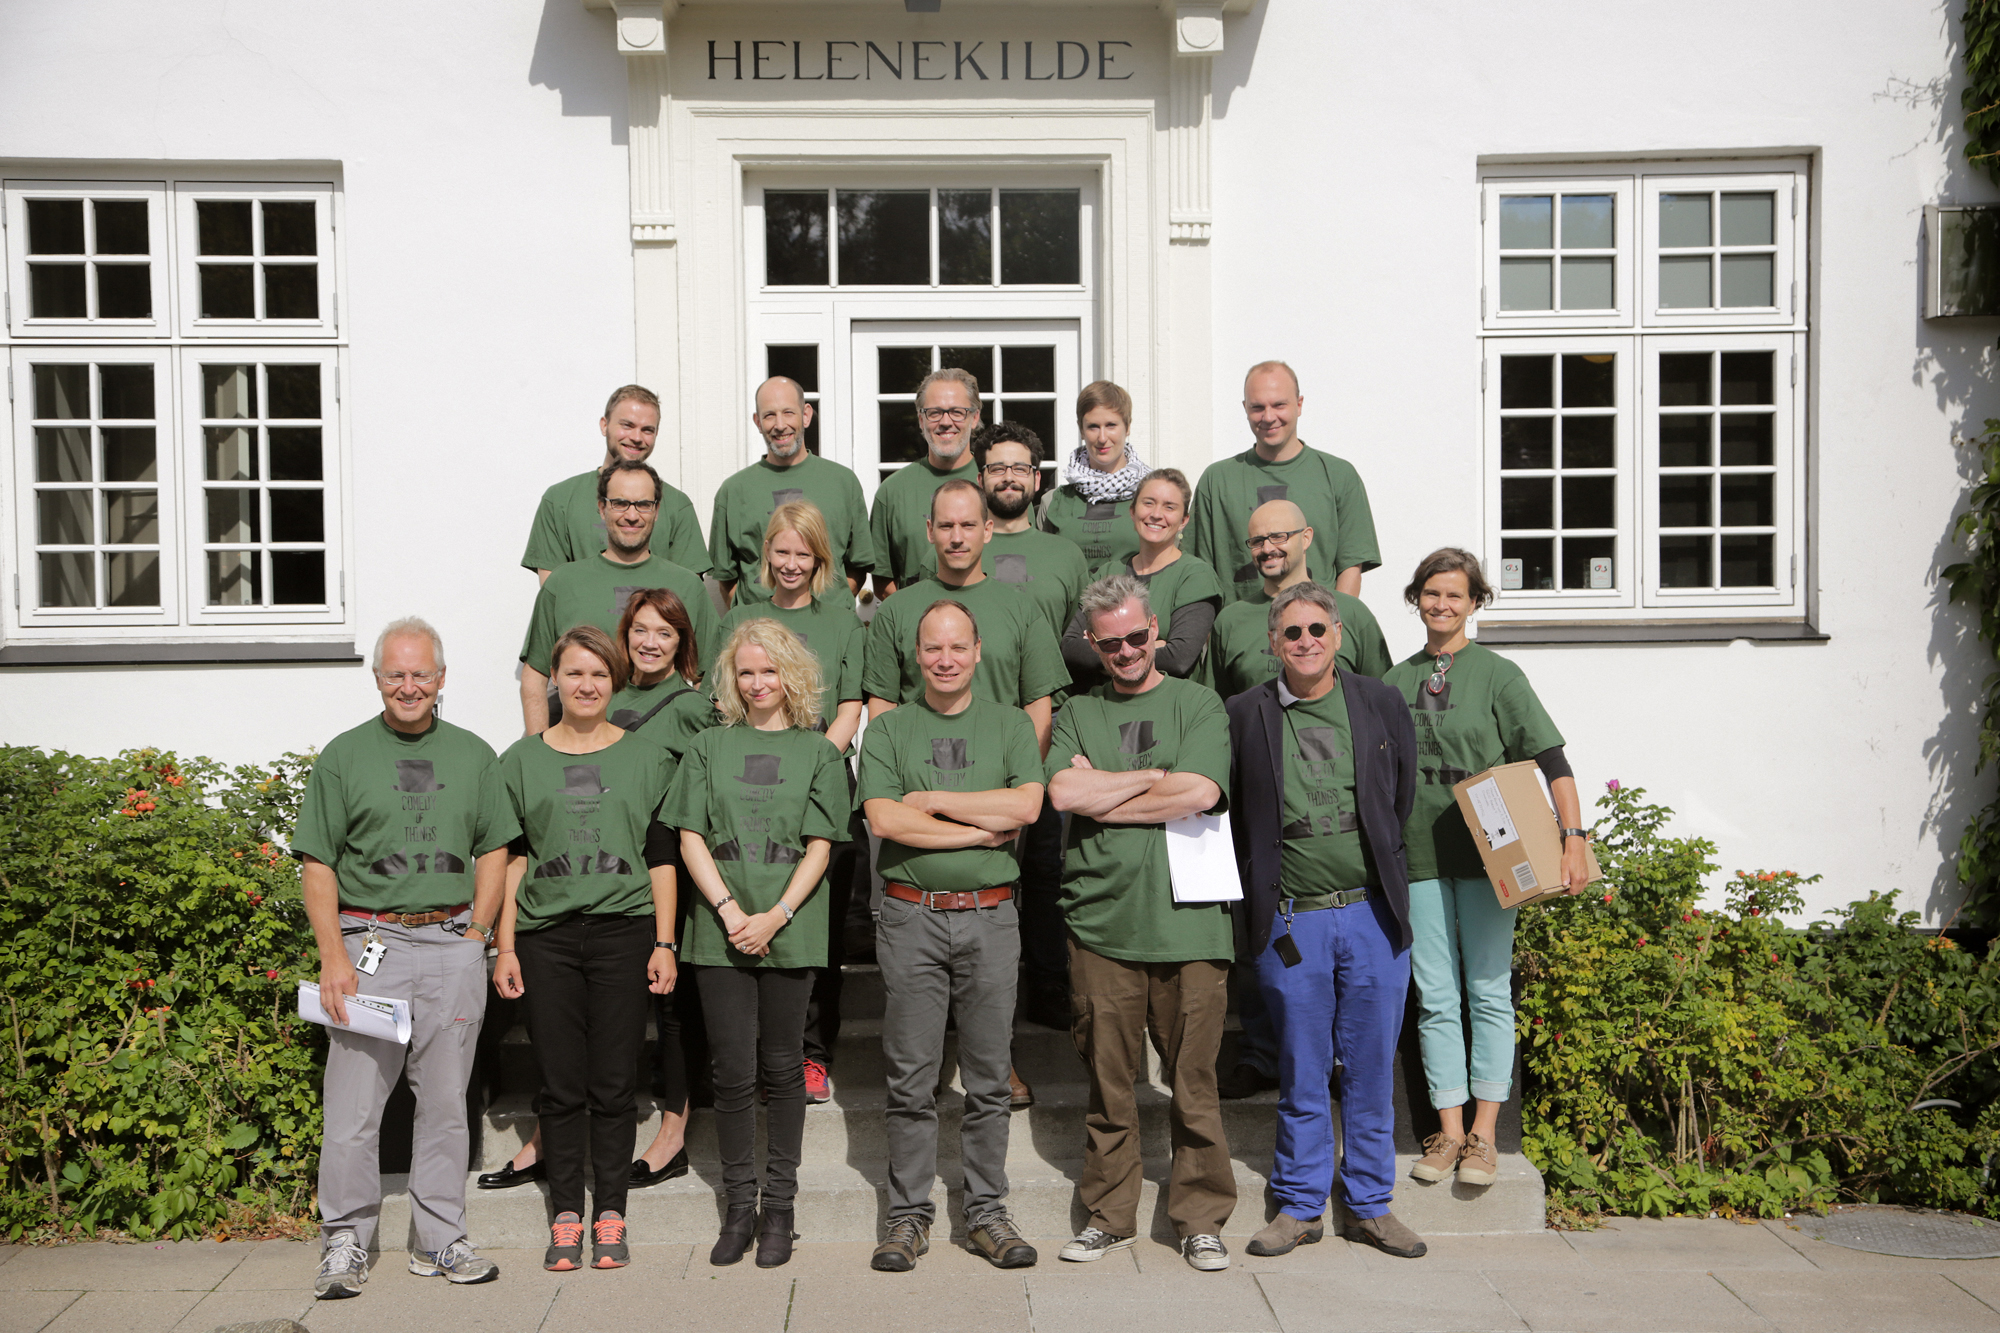 The entire group of anthropologists participating at the 'Comedy of Things' anthropological experiment that I organised in collaboration with Morten Axel Pedersen in August 2014.